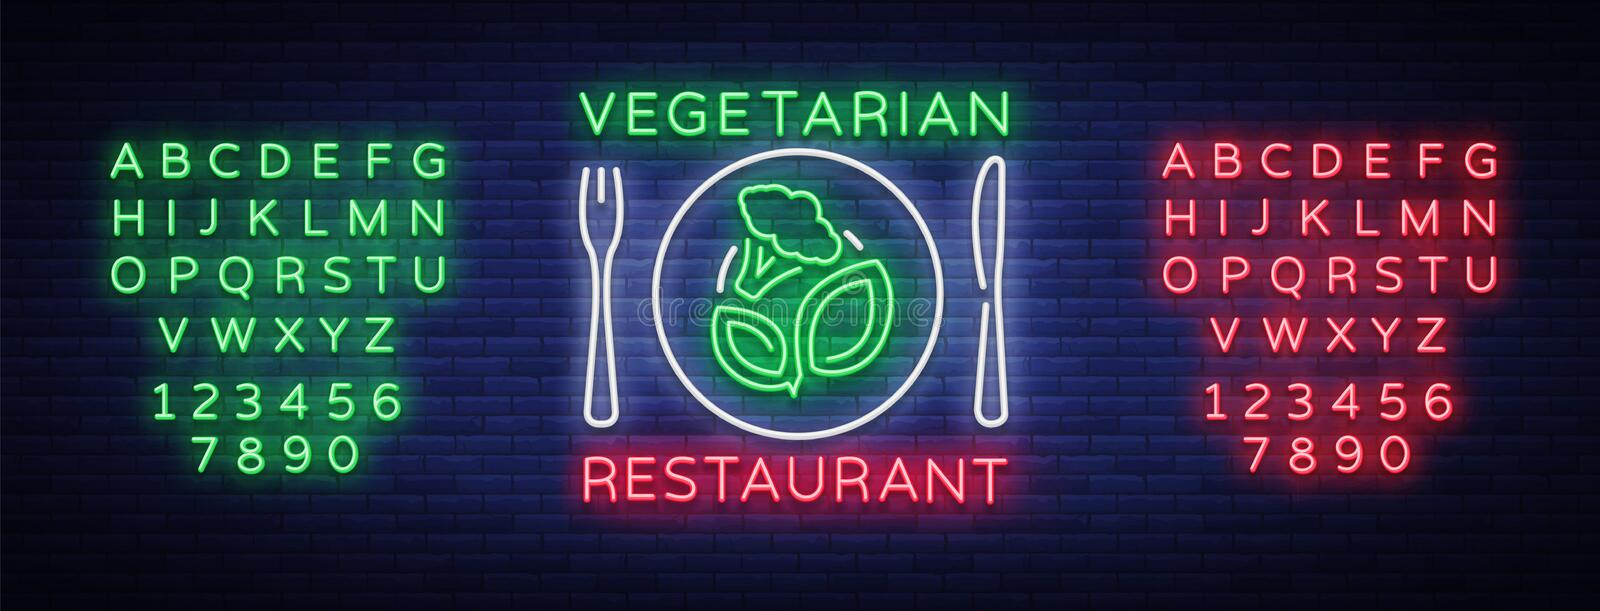 Vegetarian Restaurant Logo Neon Sign Vegan Symbol Bright Luminous